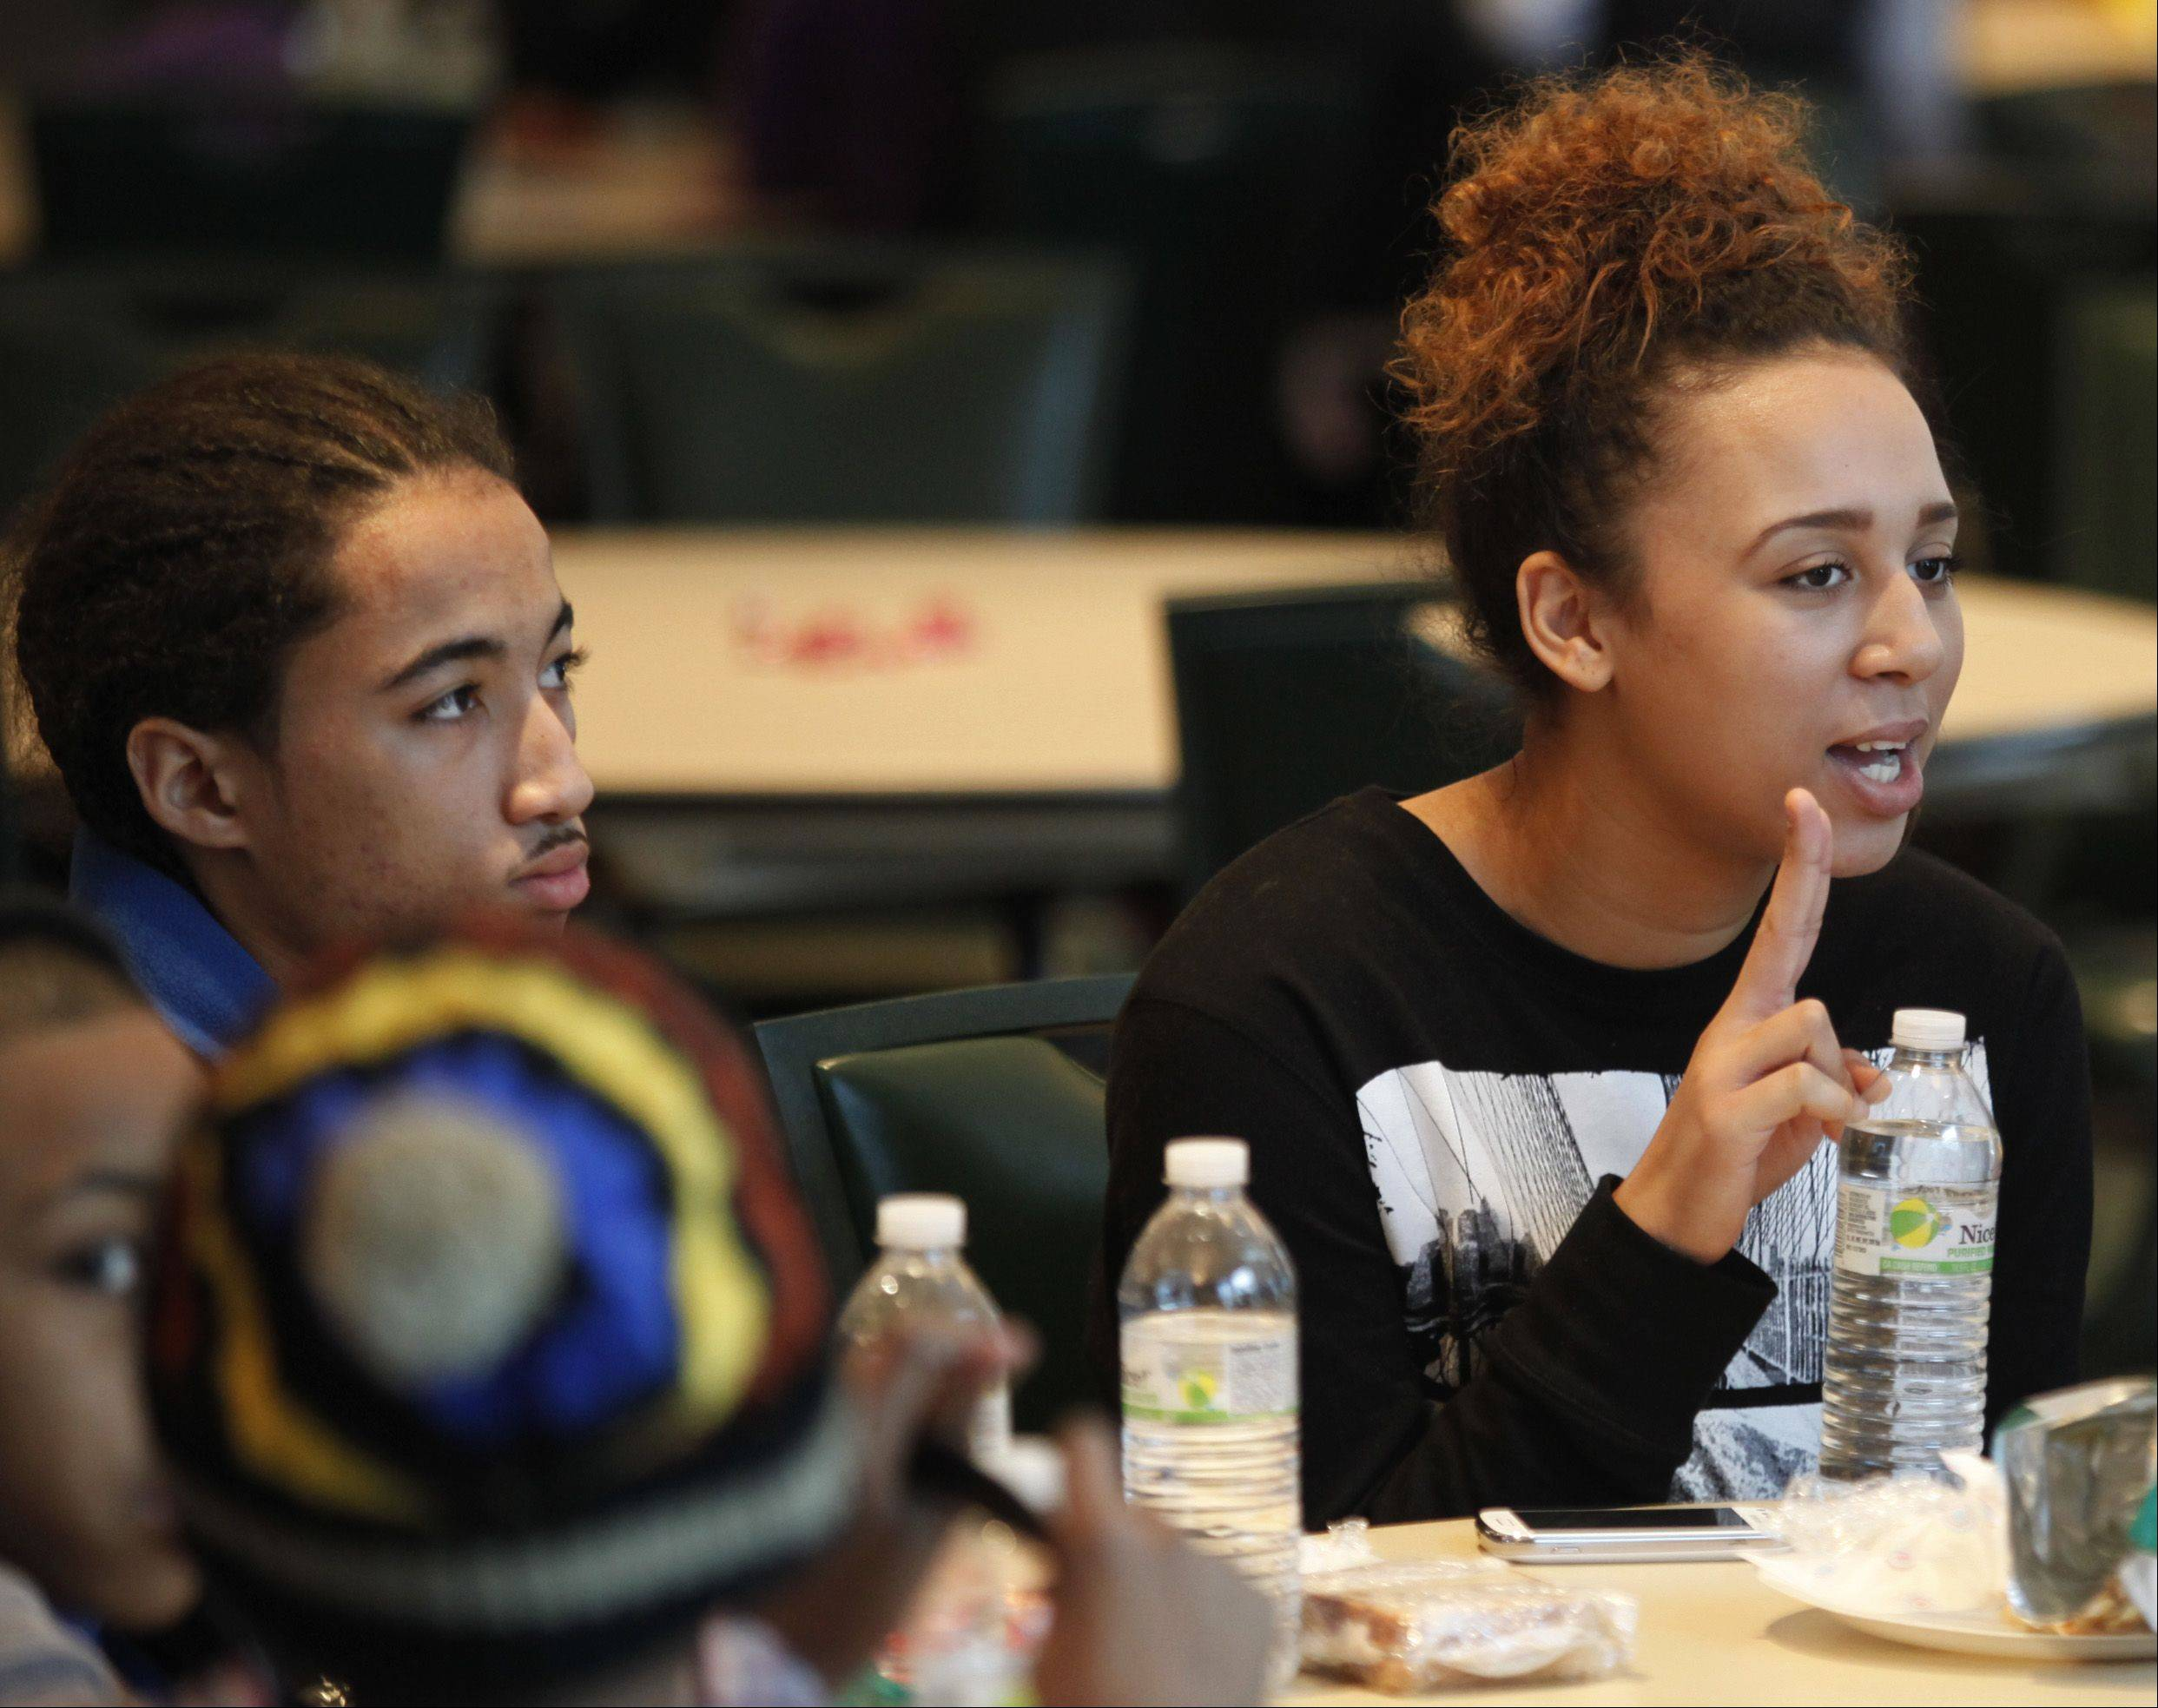 Gina Clements of Elgin, right, answers a question during a table discussion about Martin Luther King, Jr. Monday with other members of the Living Gospel Youth Group including her brother Chevelle, at left. Dozens of youth from local schools, churches and other civic groups attended a luncheon Monday afternoon in the Heritage Ballroom at The Centre of Elgin, the culmination of their volunteer work during the Day of Service event to honor the legacy of the civil rights leader.